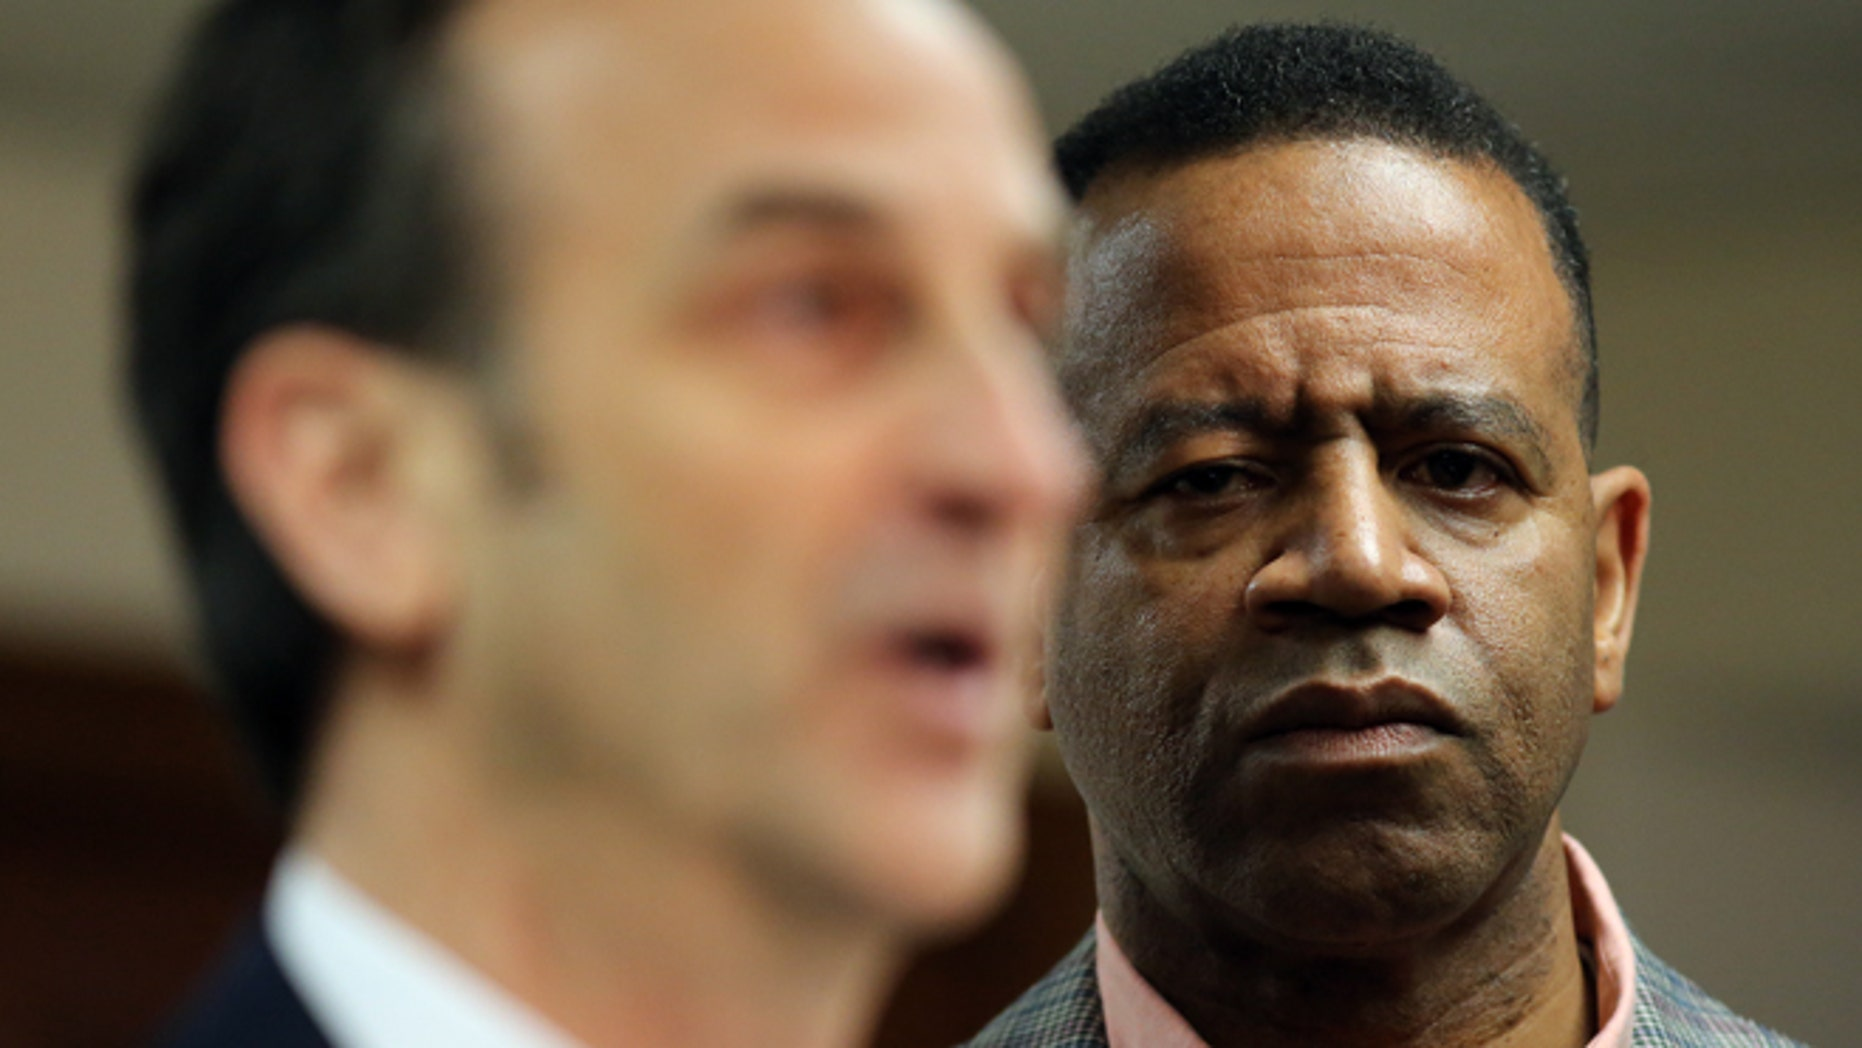 Feb. 18, 2015: Kelvin Cochran, right,who was fired from his position as Atlanta Fire Chief, listens as his attorney David Cortman answers questions at a press conference where he and his attorney announced that they had filed a federal lawsuit against the City of Atlanta.